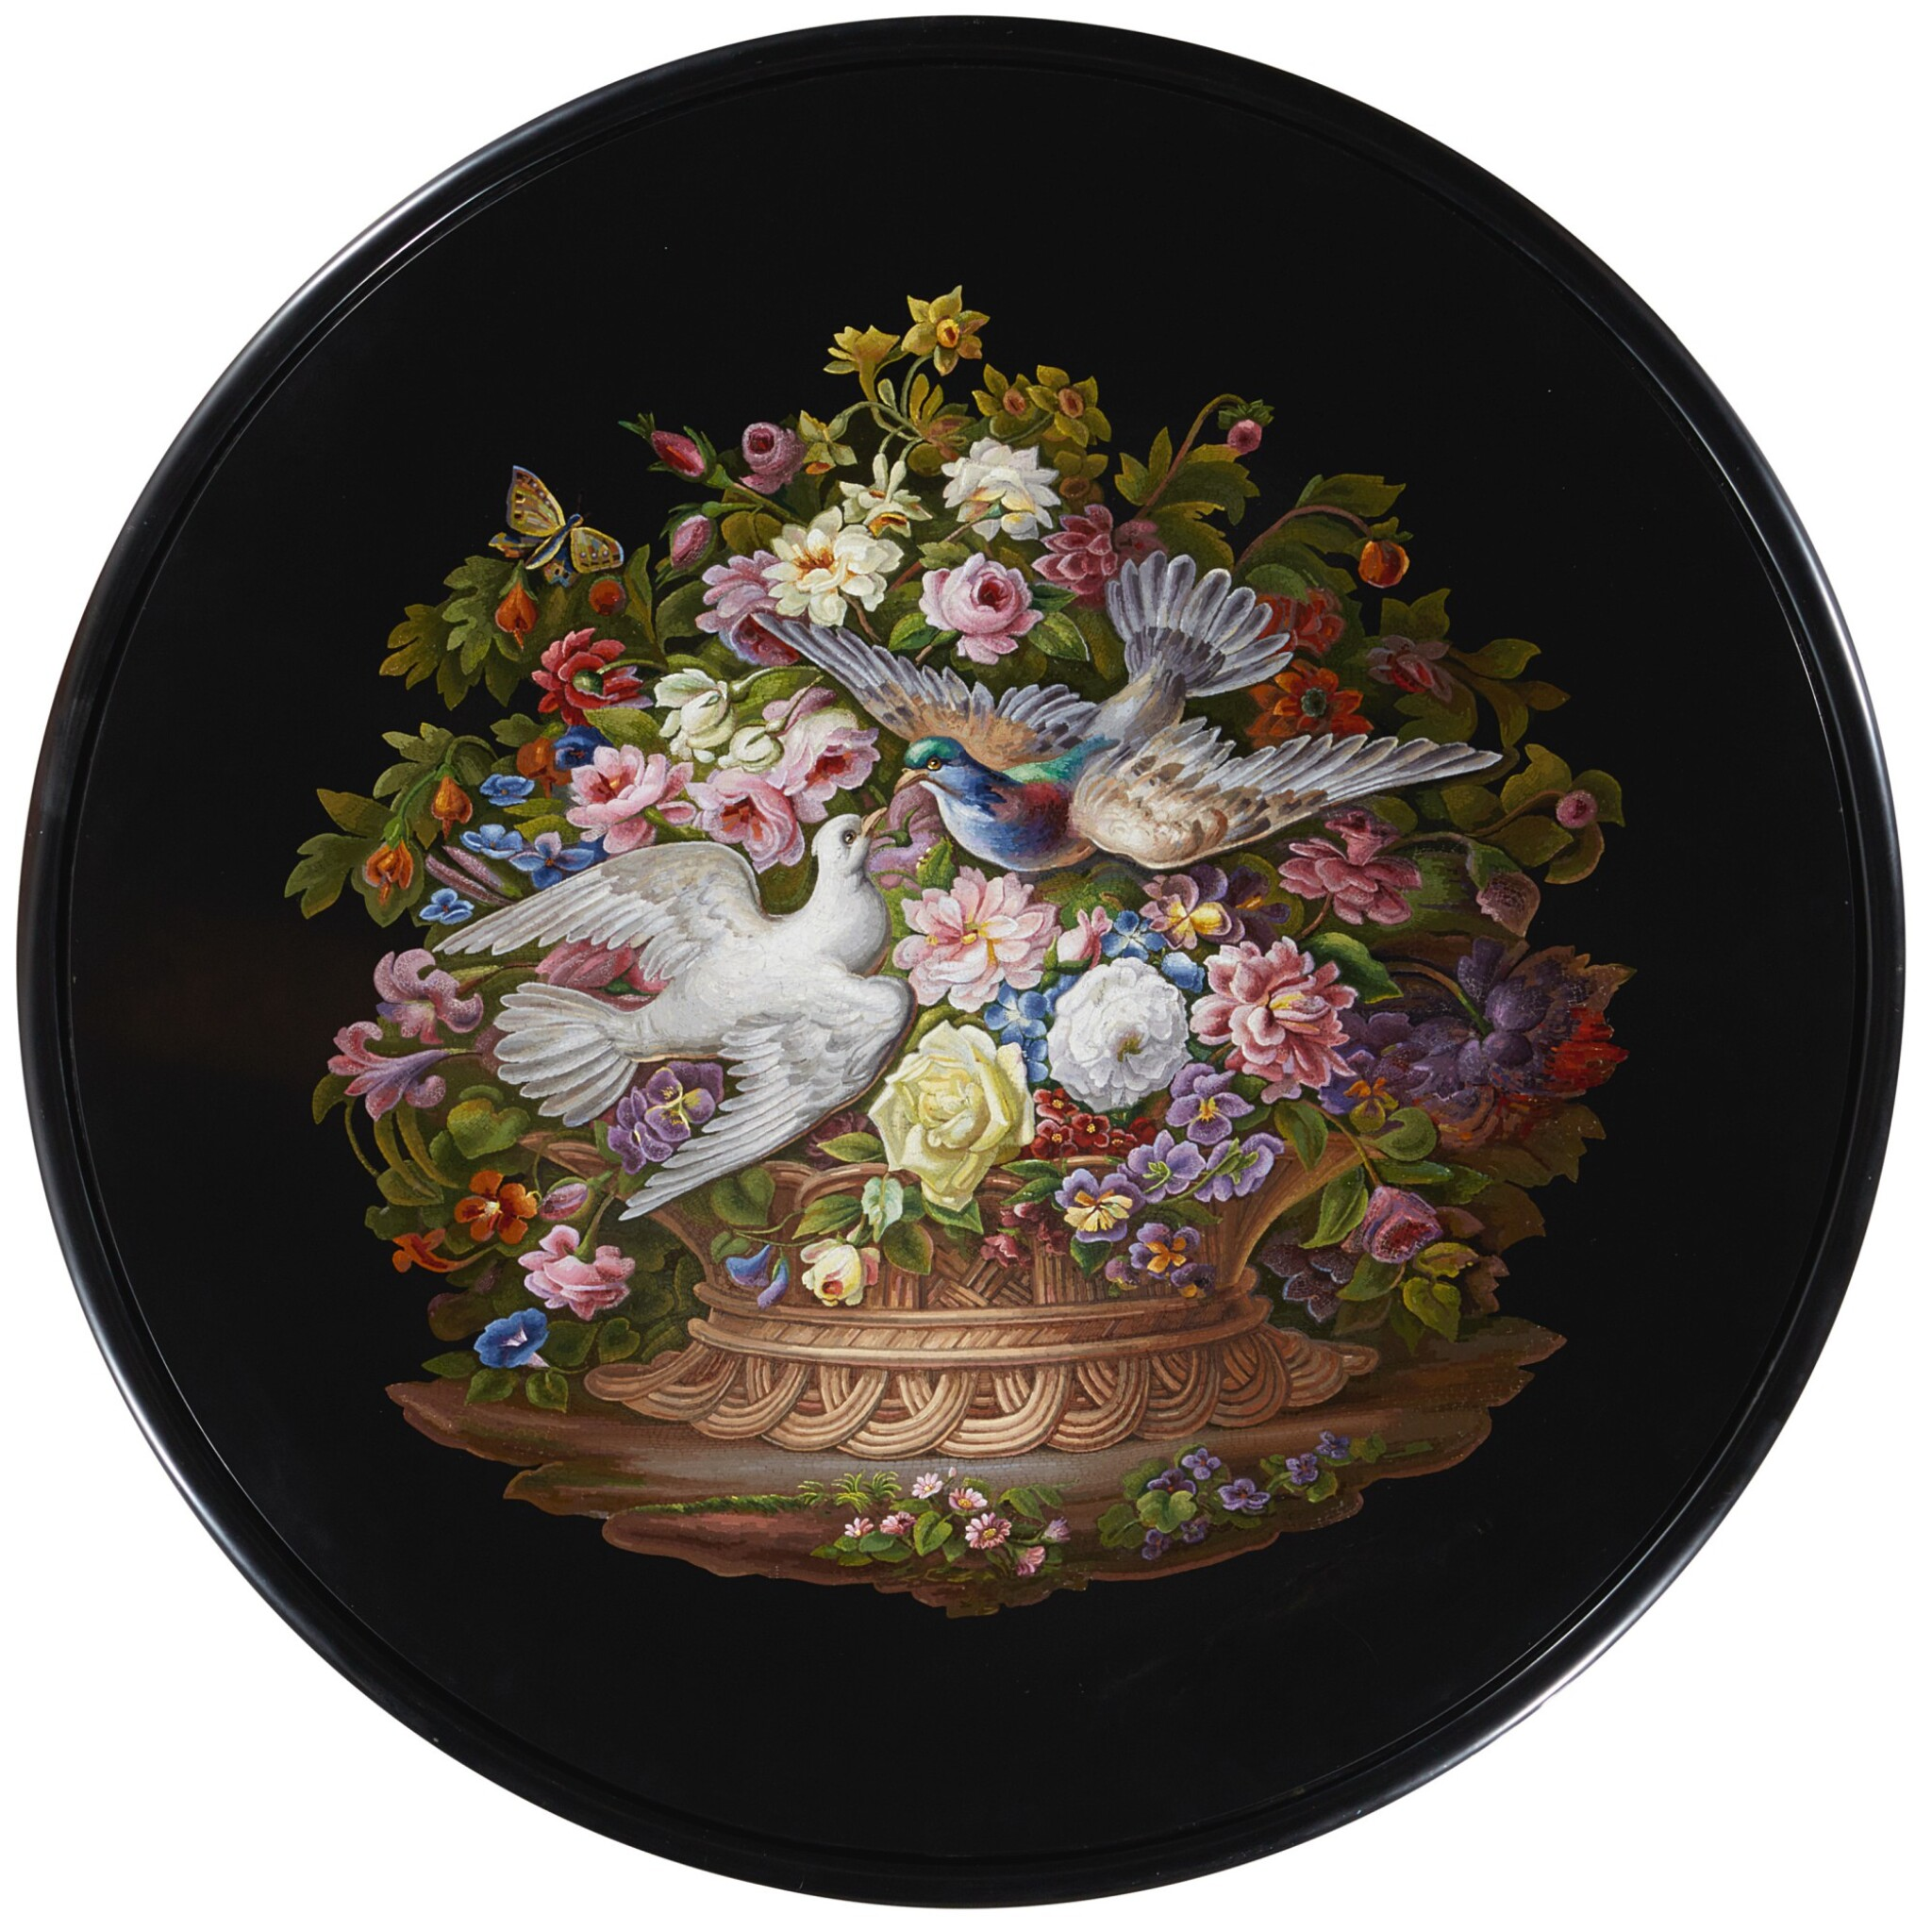 AN ITALIAN MICROMOSAIC TABLE, ROME CIRCA 1825-1850